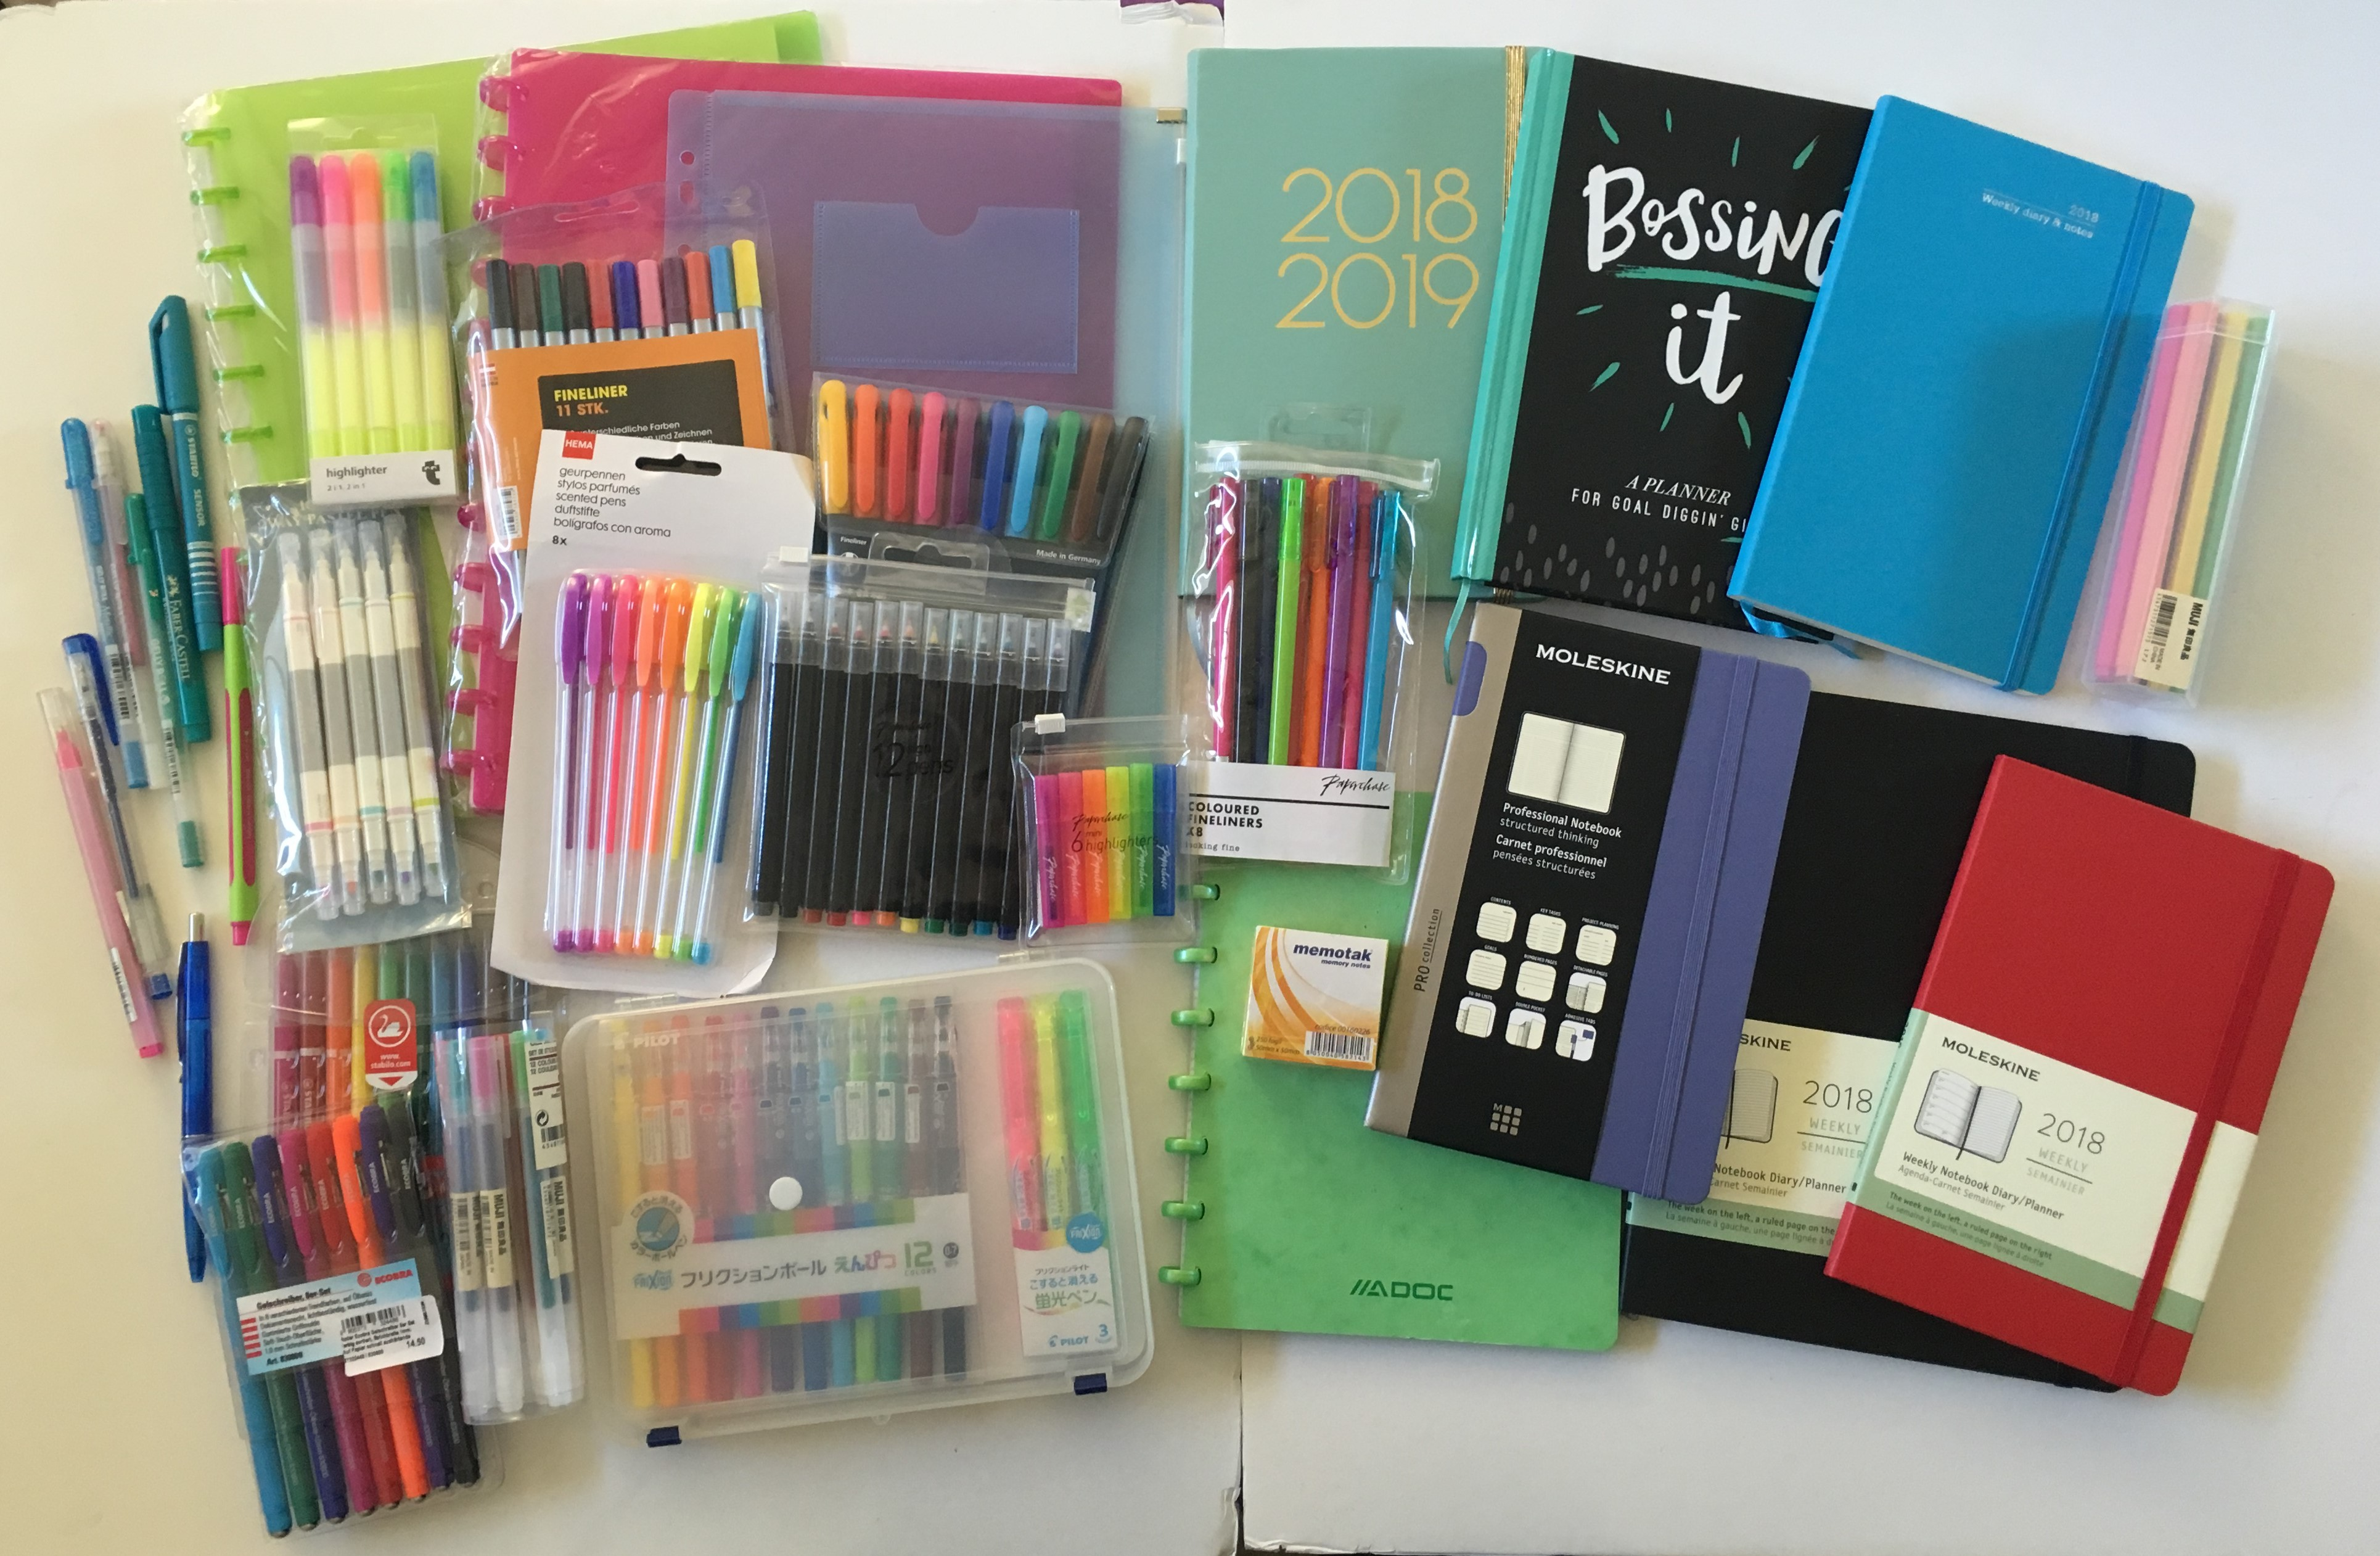 europe stationery haul paperchase planners pen stationery highlighter switzerland moleskin manor globus review recommendation